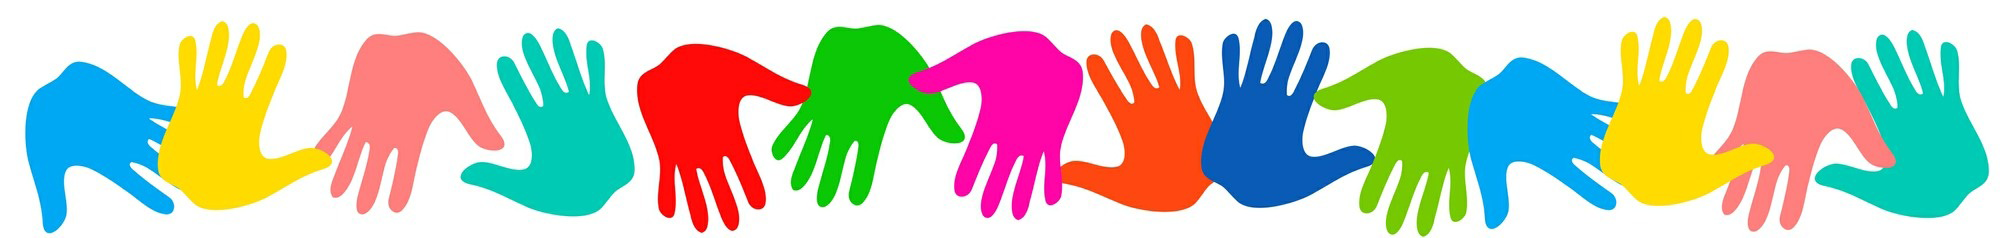 Brightly colored hand prints